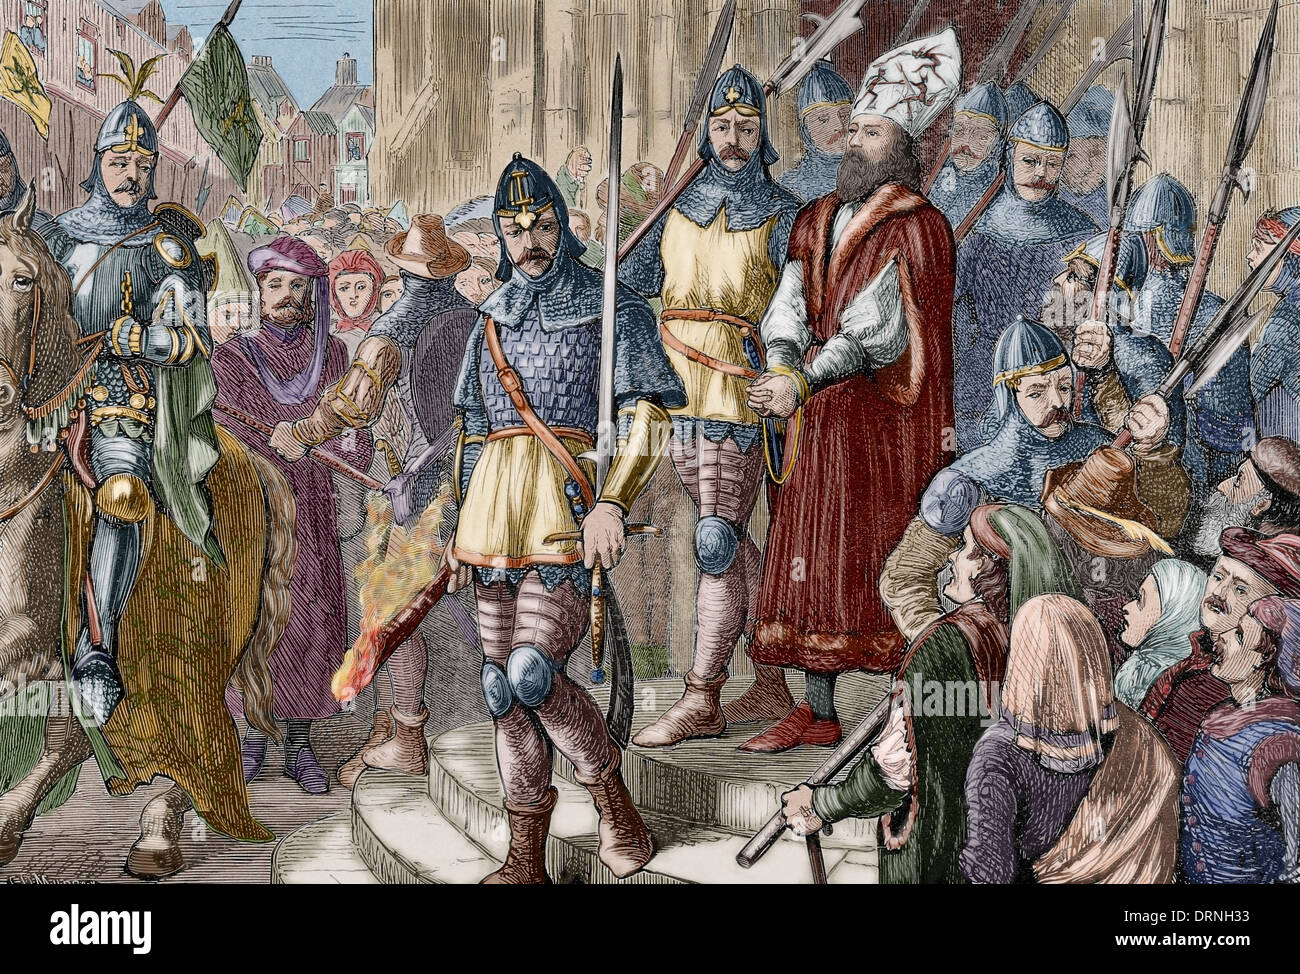 Jerome of Prague (1360-1416). Bohemian preacher. Jerome of Prague marching to execution. Engraving. Colored. - Stock Image